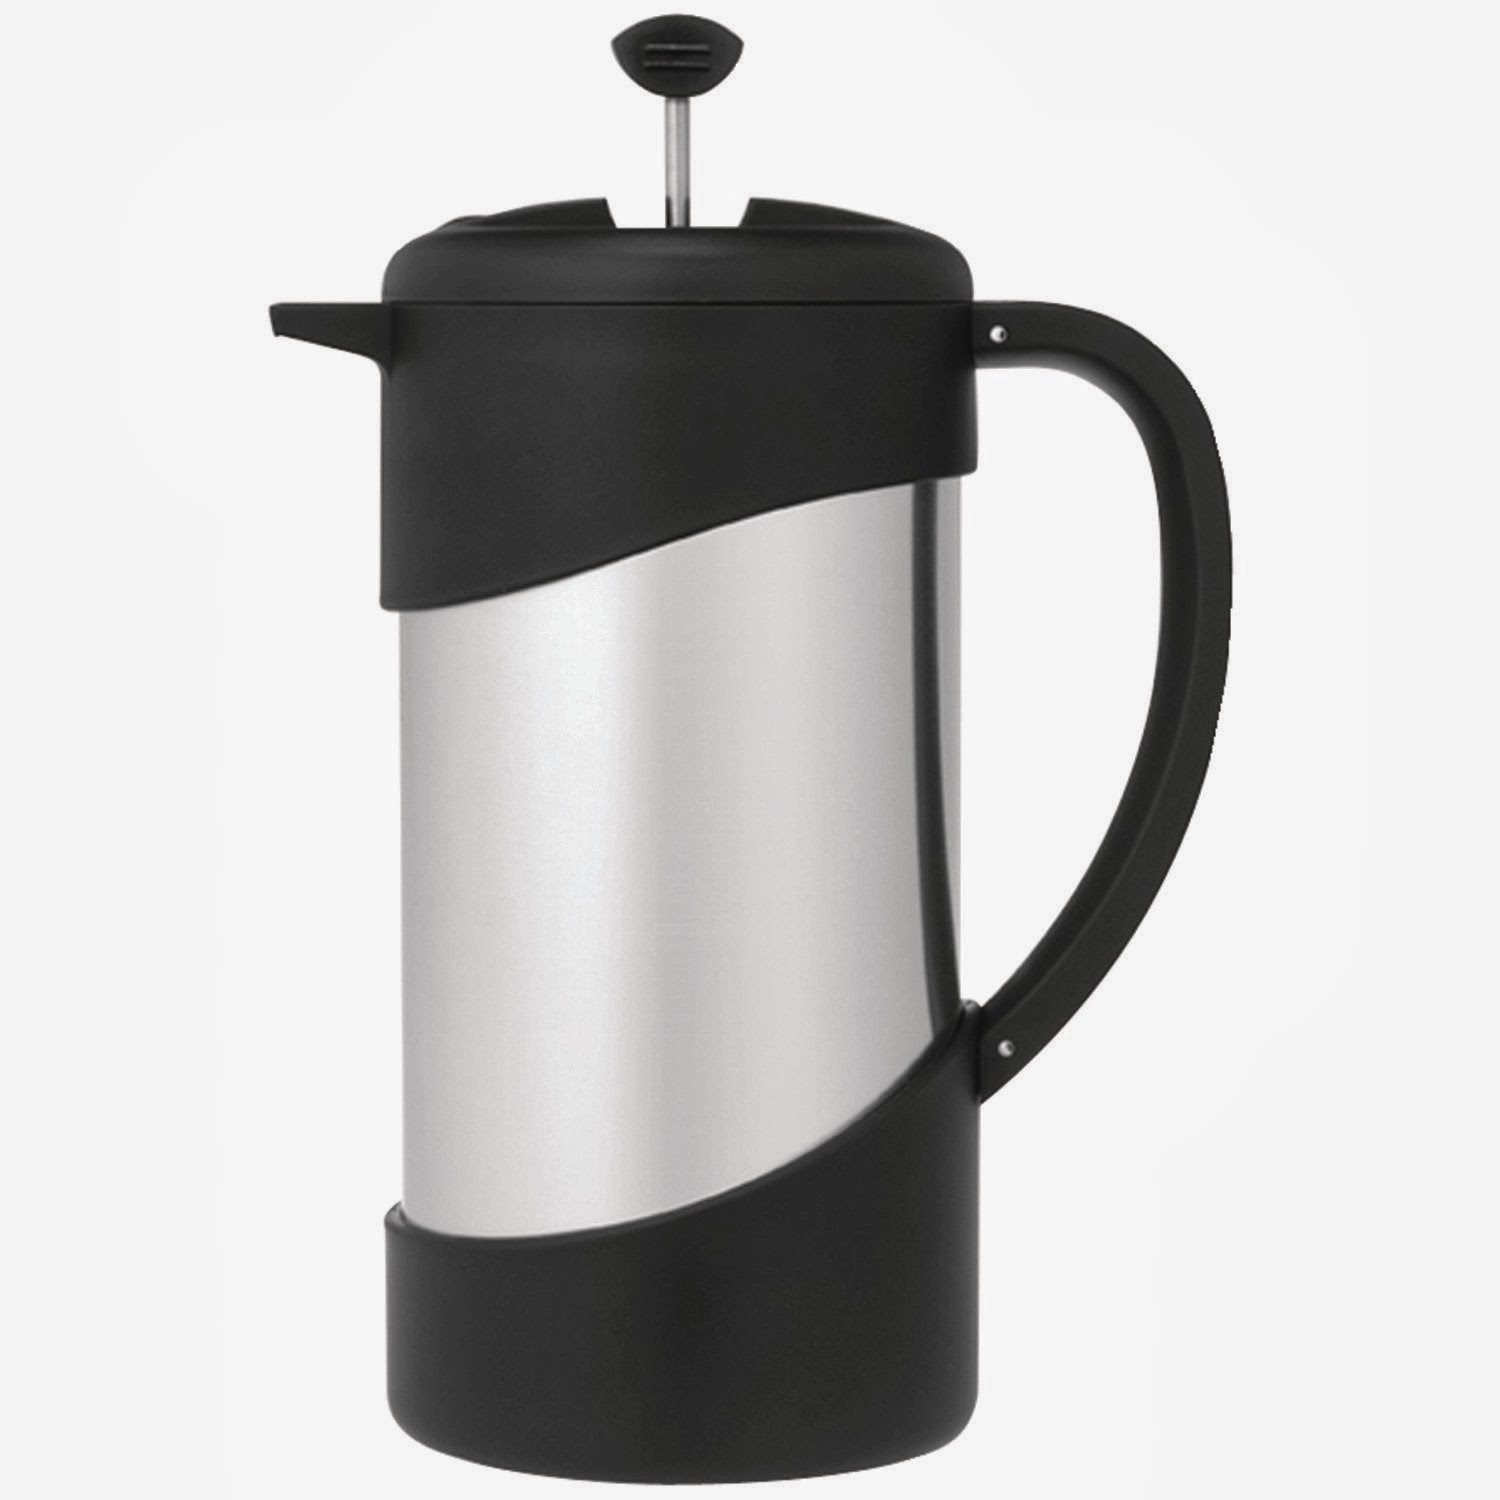 French Press Coffee Maker For Camping : Tiny Yellow Teardrop: How do you make coffee?